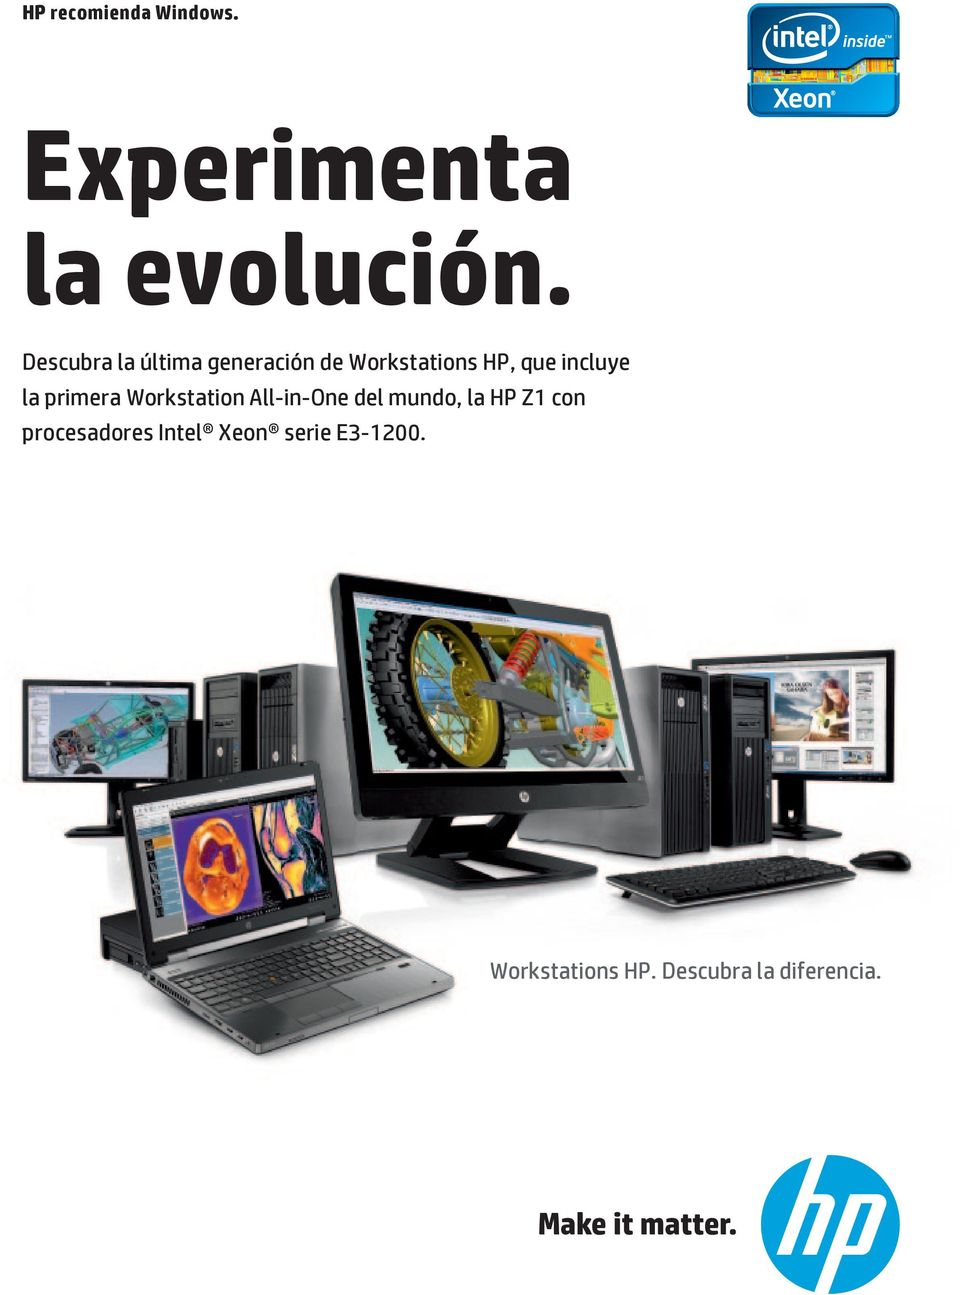 incluye la primera Workstation All-in-One del mundo, la